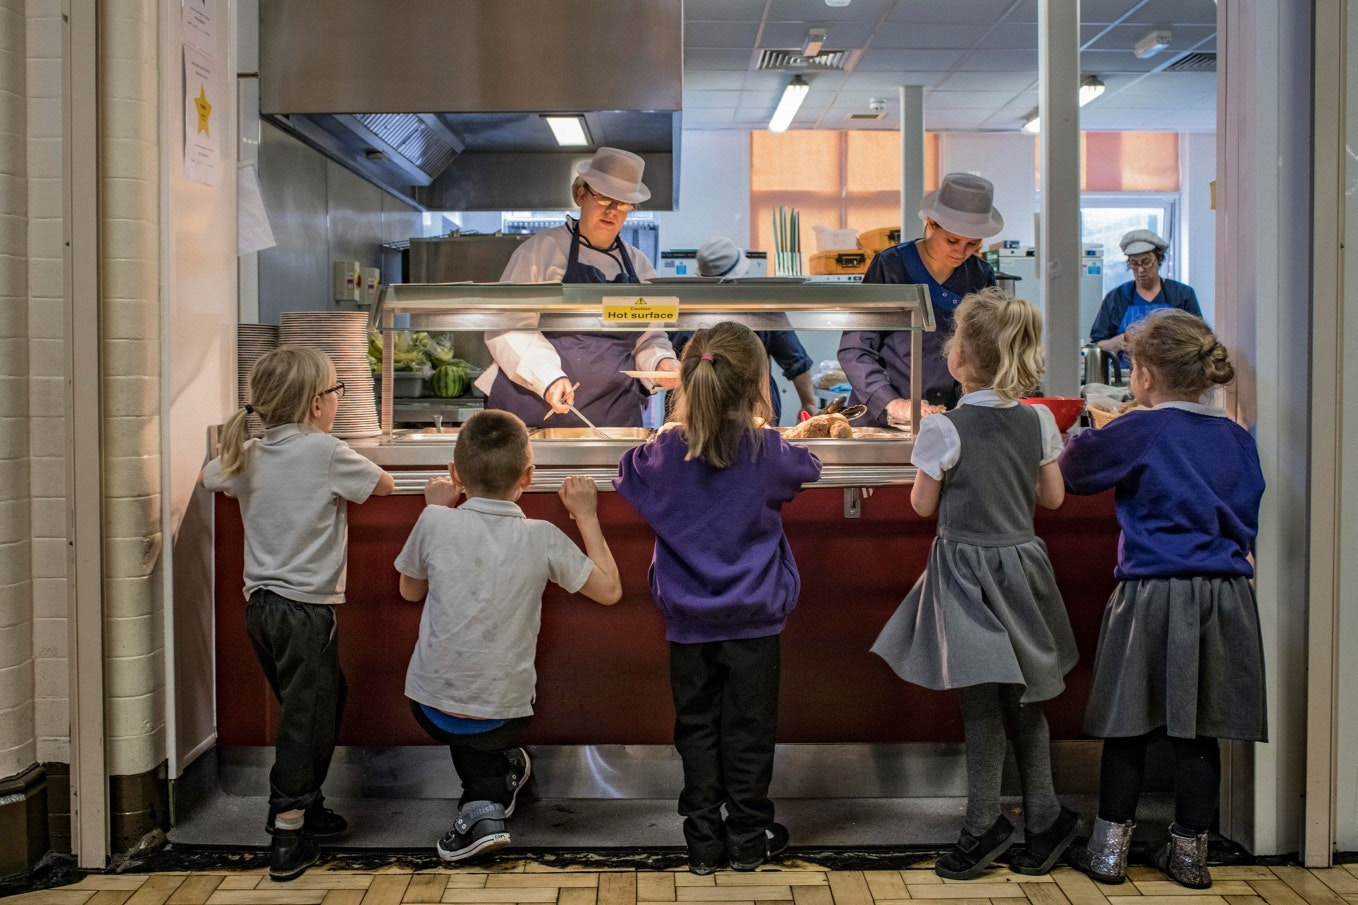 Children and staff in a cafeteria